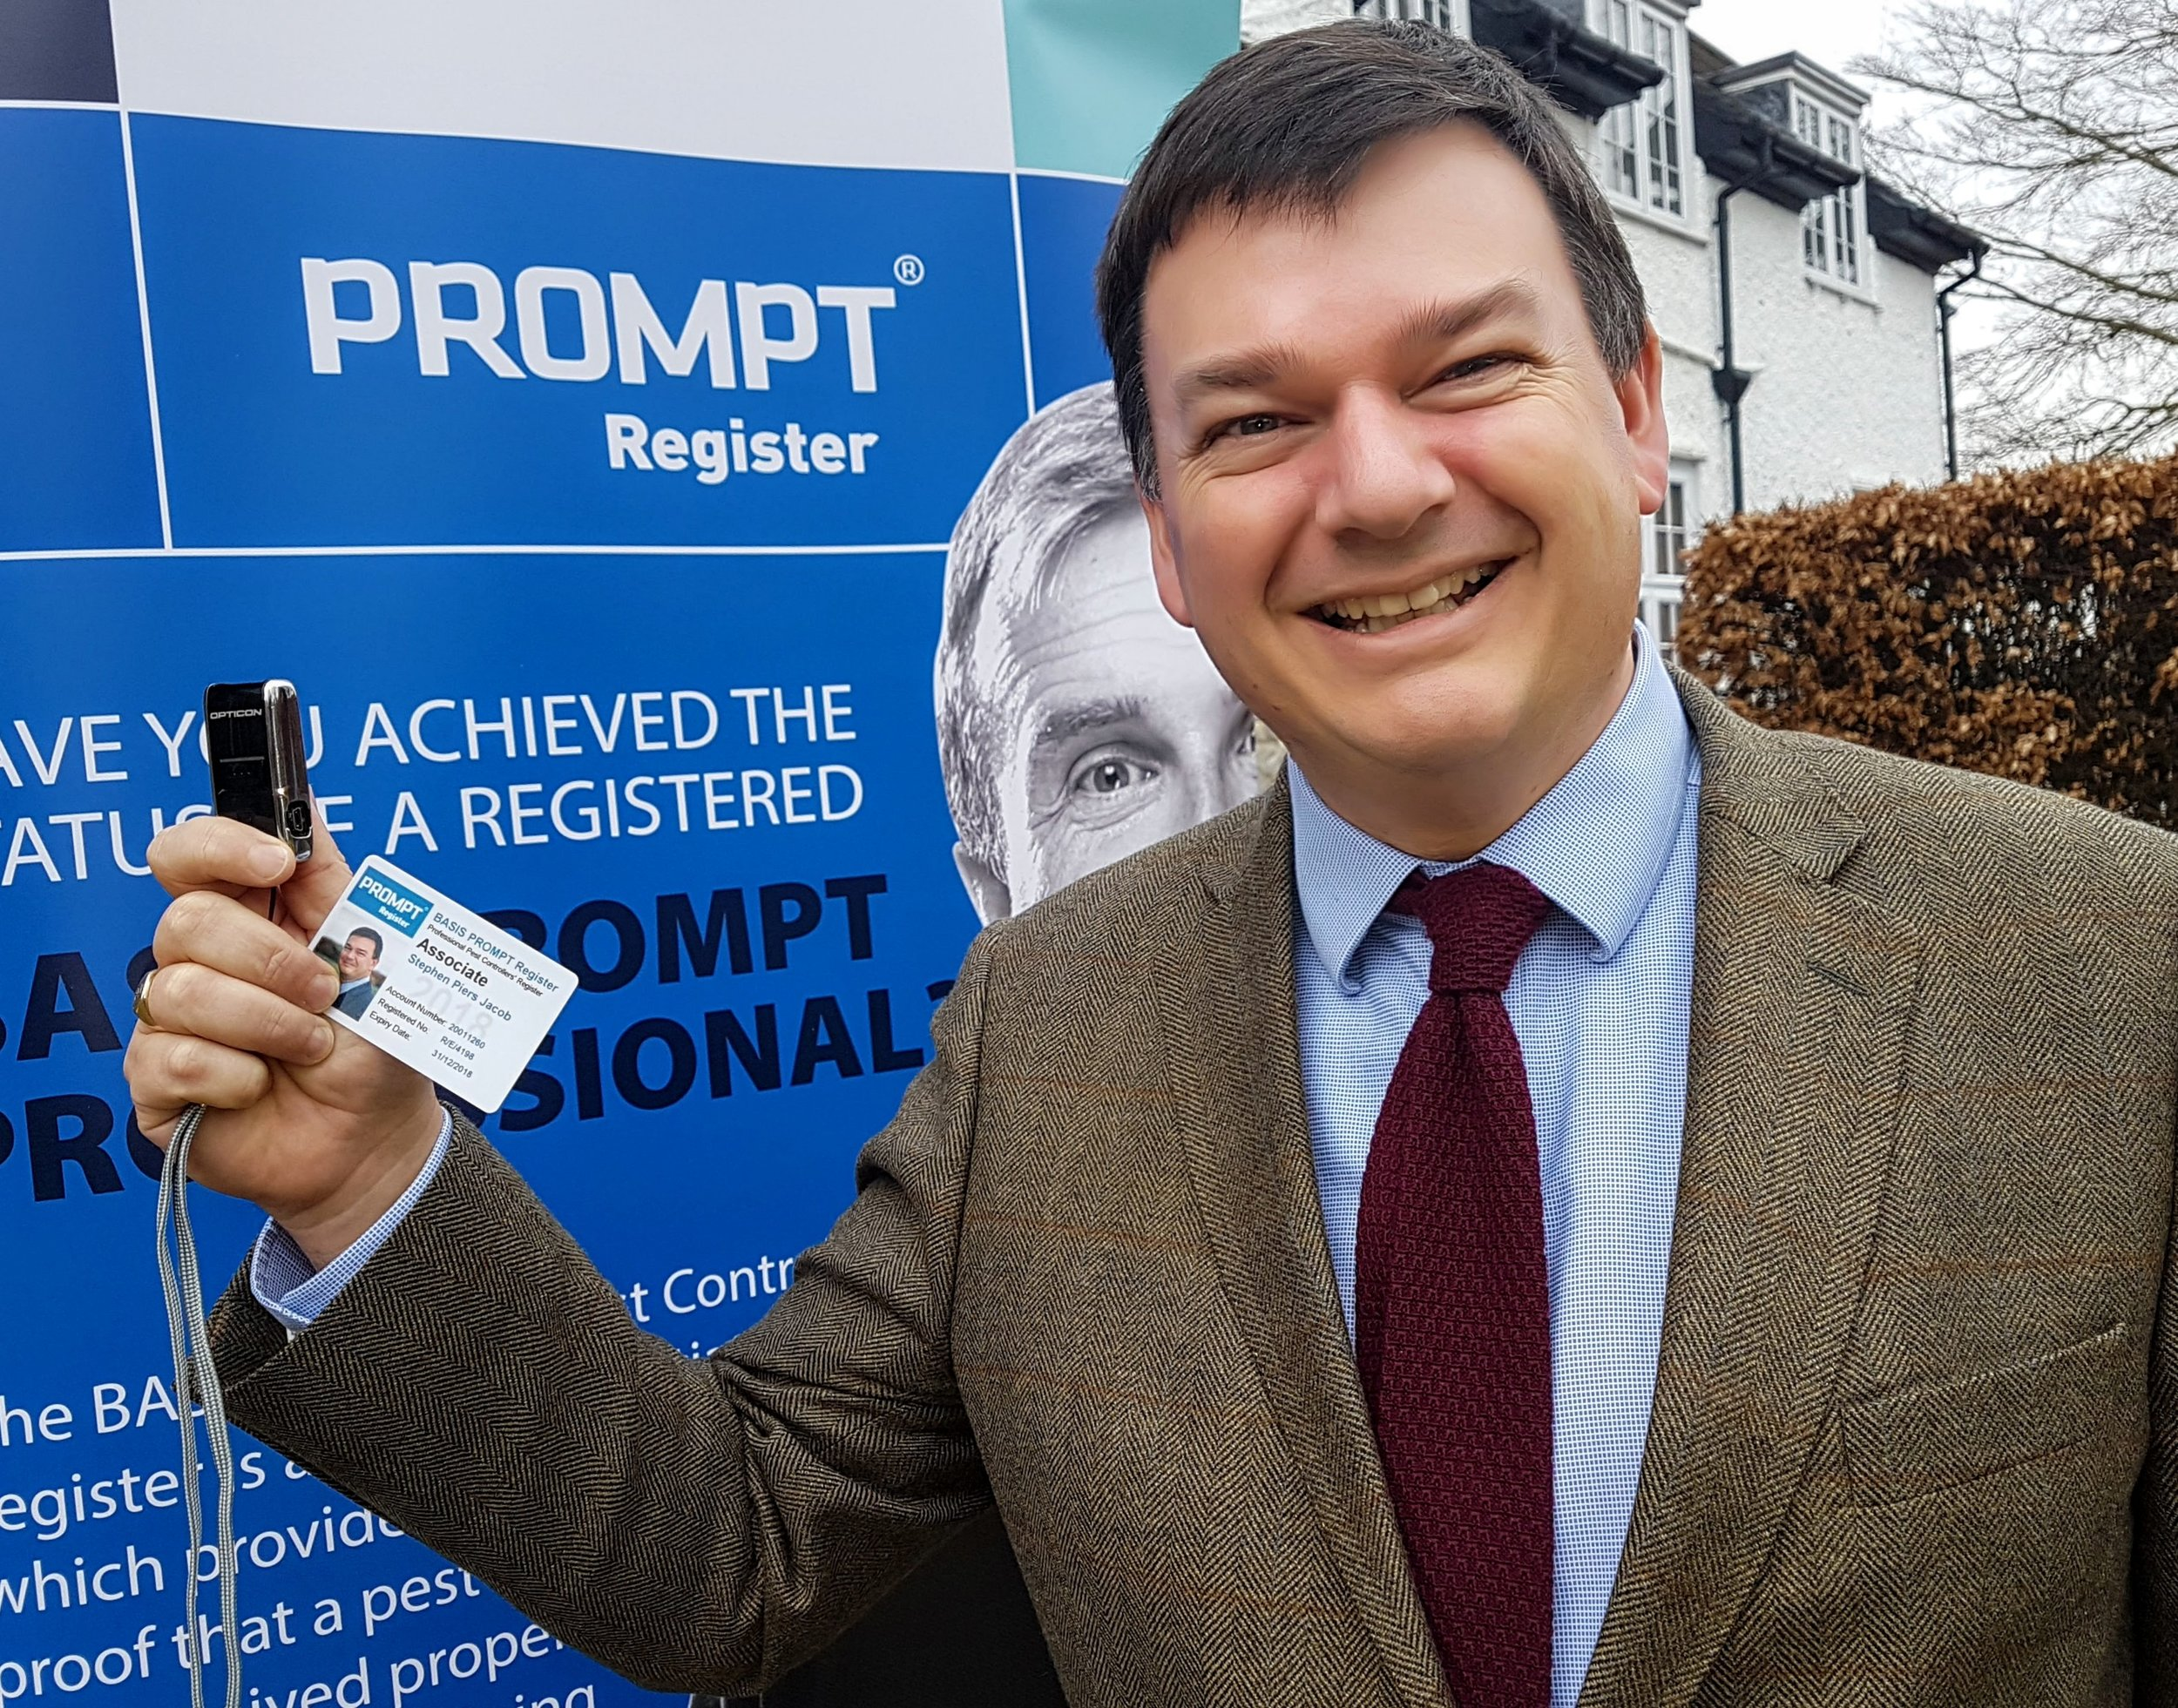 Stephen Jacob, chief executive of the PROMPT Register, which has changed its strapline to Registering Excellence in Pest Management to reflect the industry's move from pest control to pest management. Penguin PR - public relations, media and communications